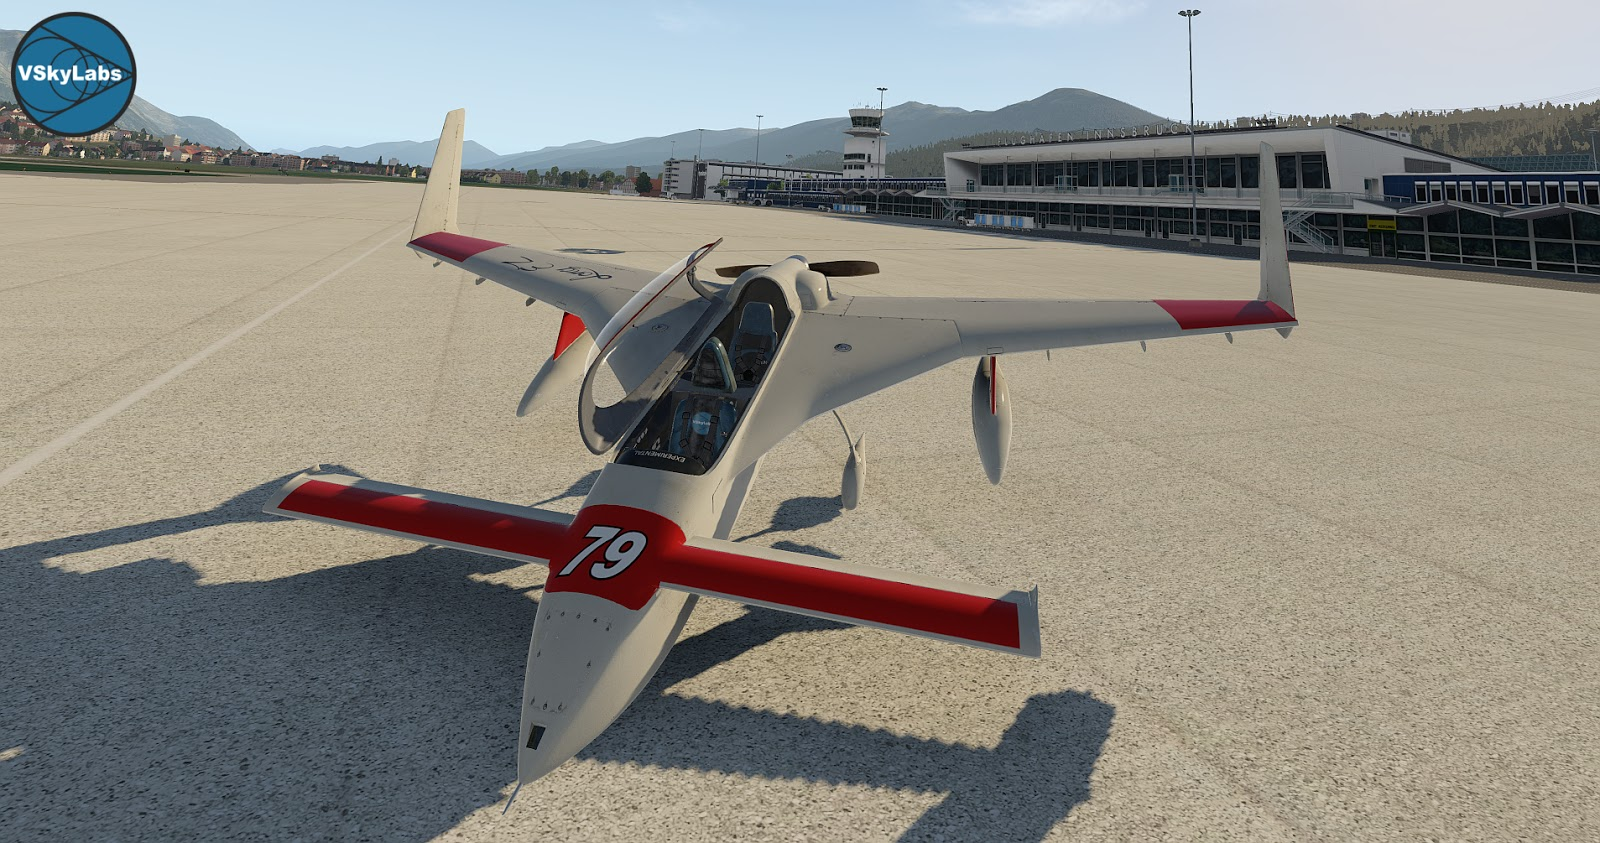 NEW RELEASE! The VSKYLABS Rutan LongEZ Project